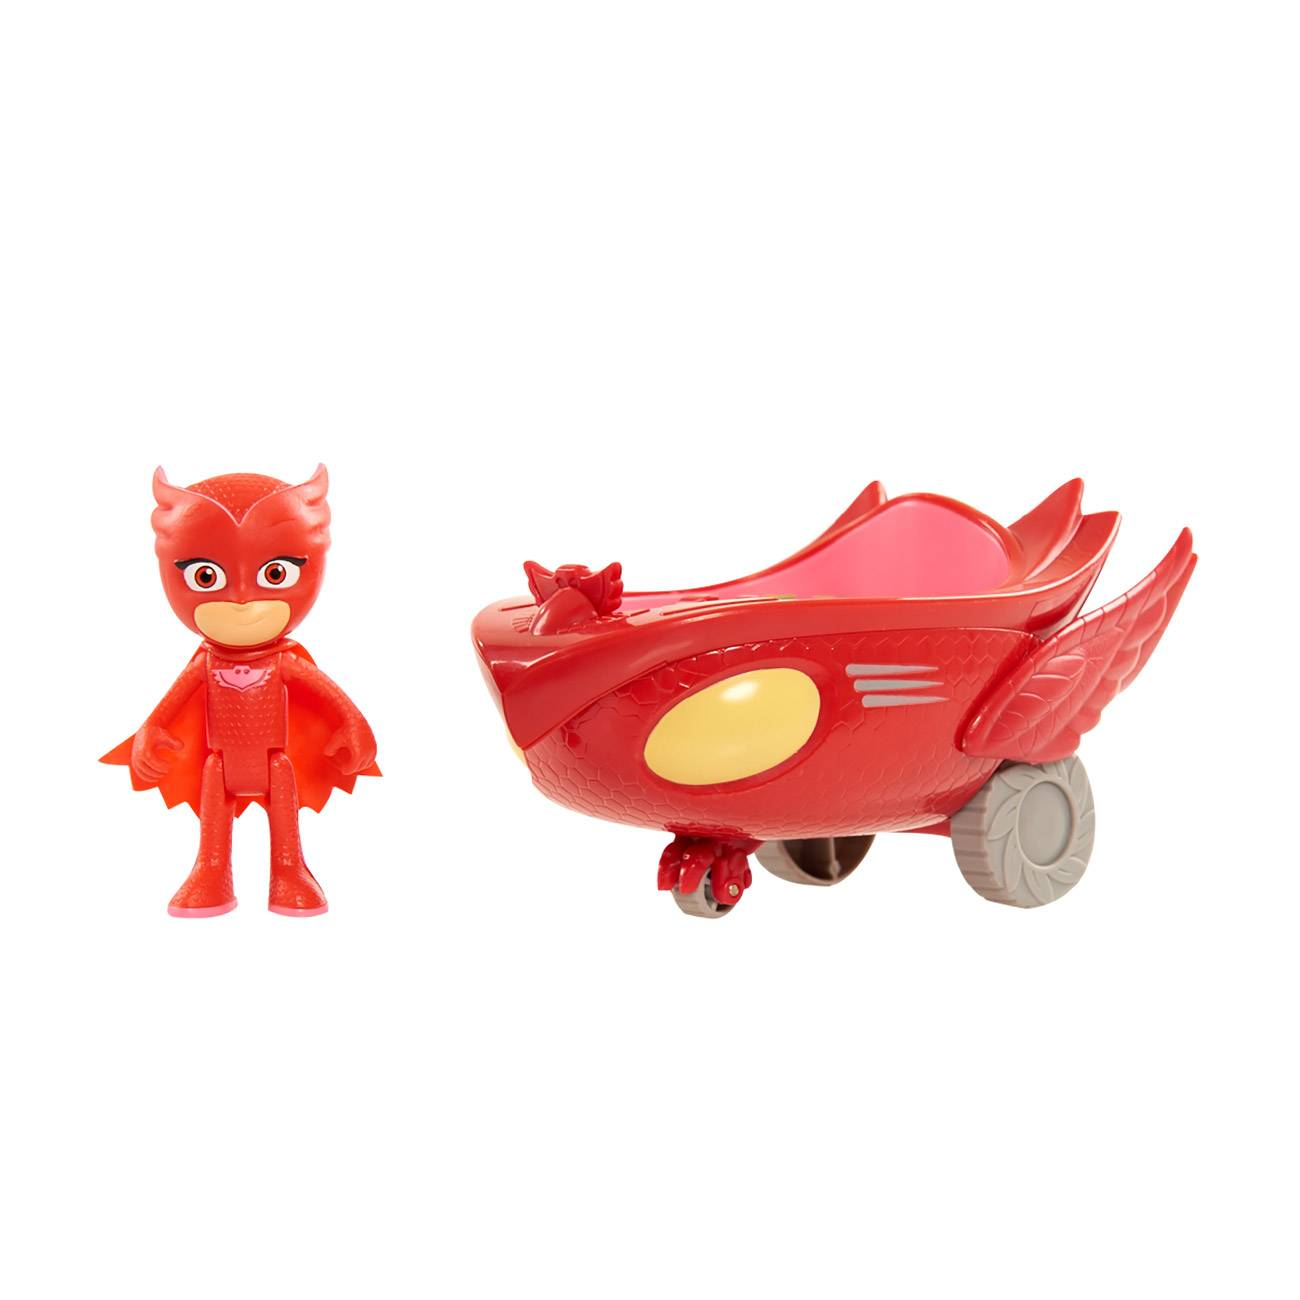 OWLETTE AND VEHICLE